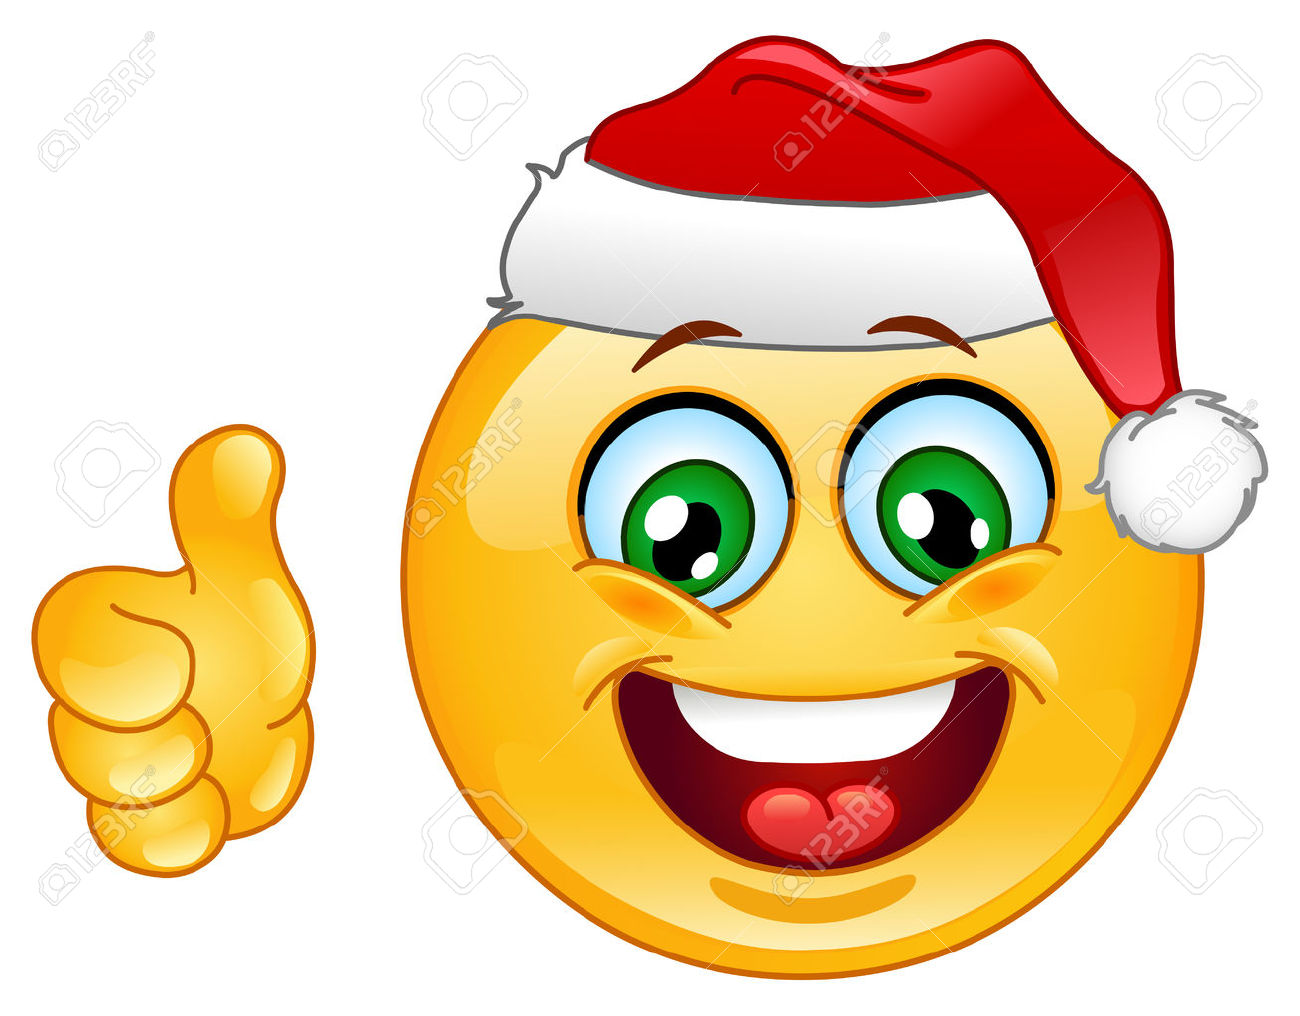 Thumbs up emoji clipart graphic library download Christmas Emoticon With Thumb Up Royalty Free Cliparts, Vectors ... graphic library download